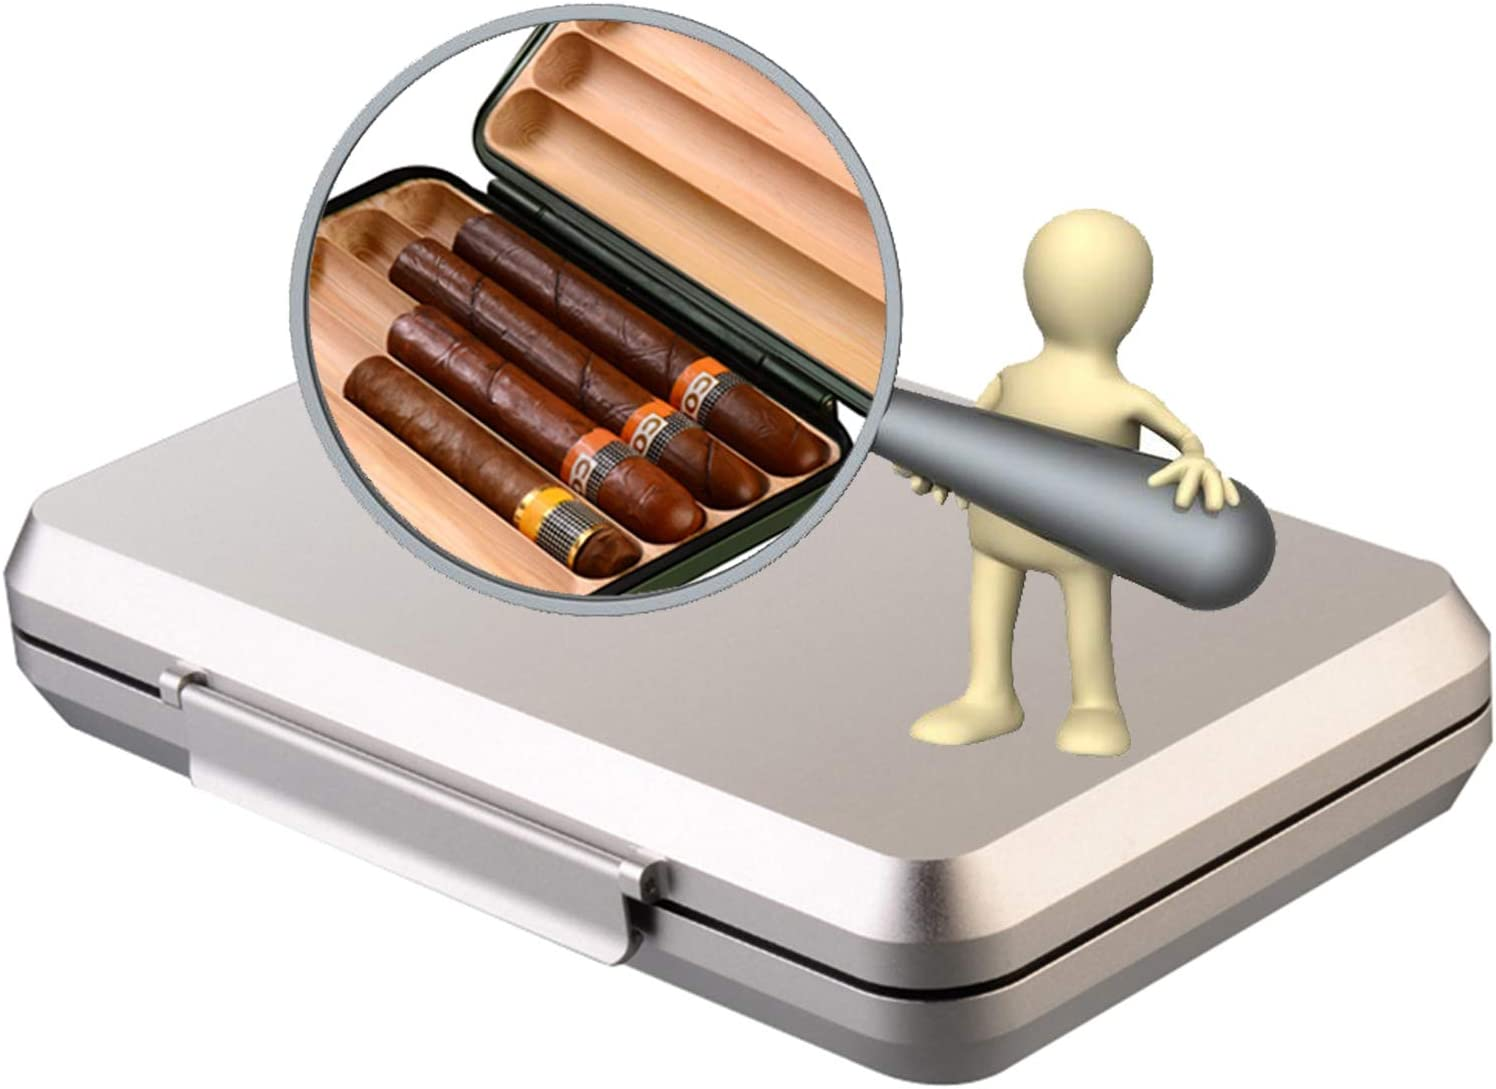 JHKJ Cigar Max 67% OFF Humidor Compact Case Challenge the lowest price of Japan - Aluminum Portable C Box Travel